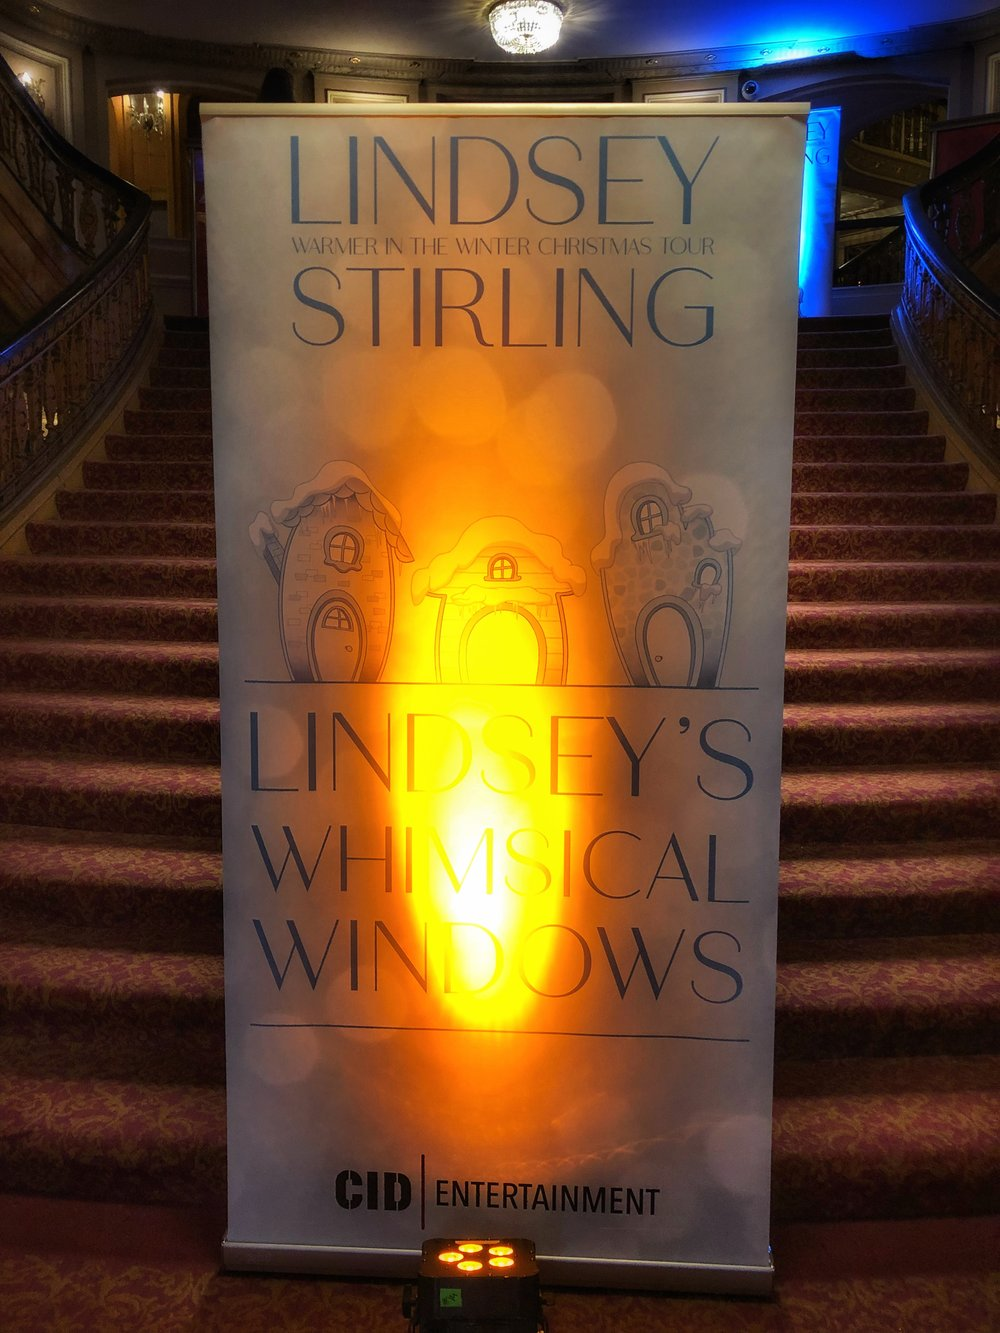 51Lindsey_Stirling_Concert_Chicago.jpg